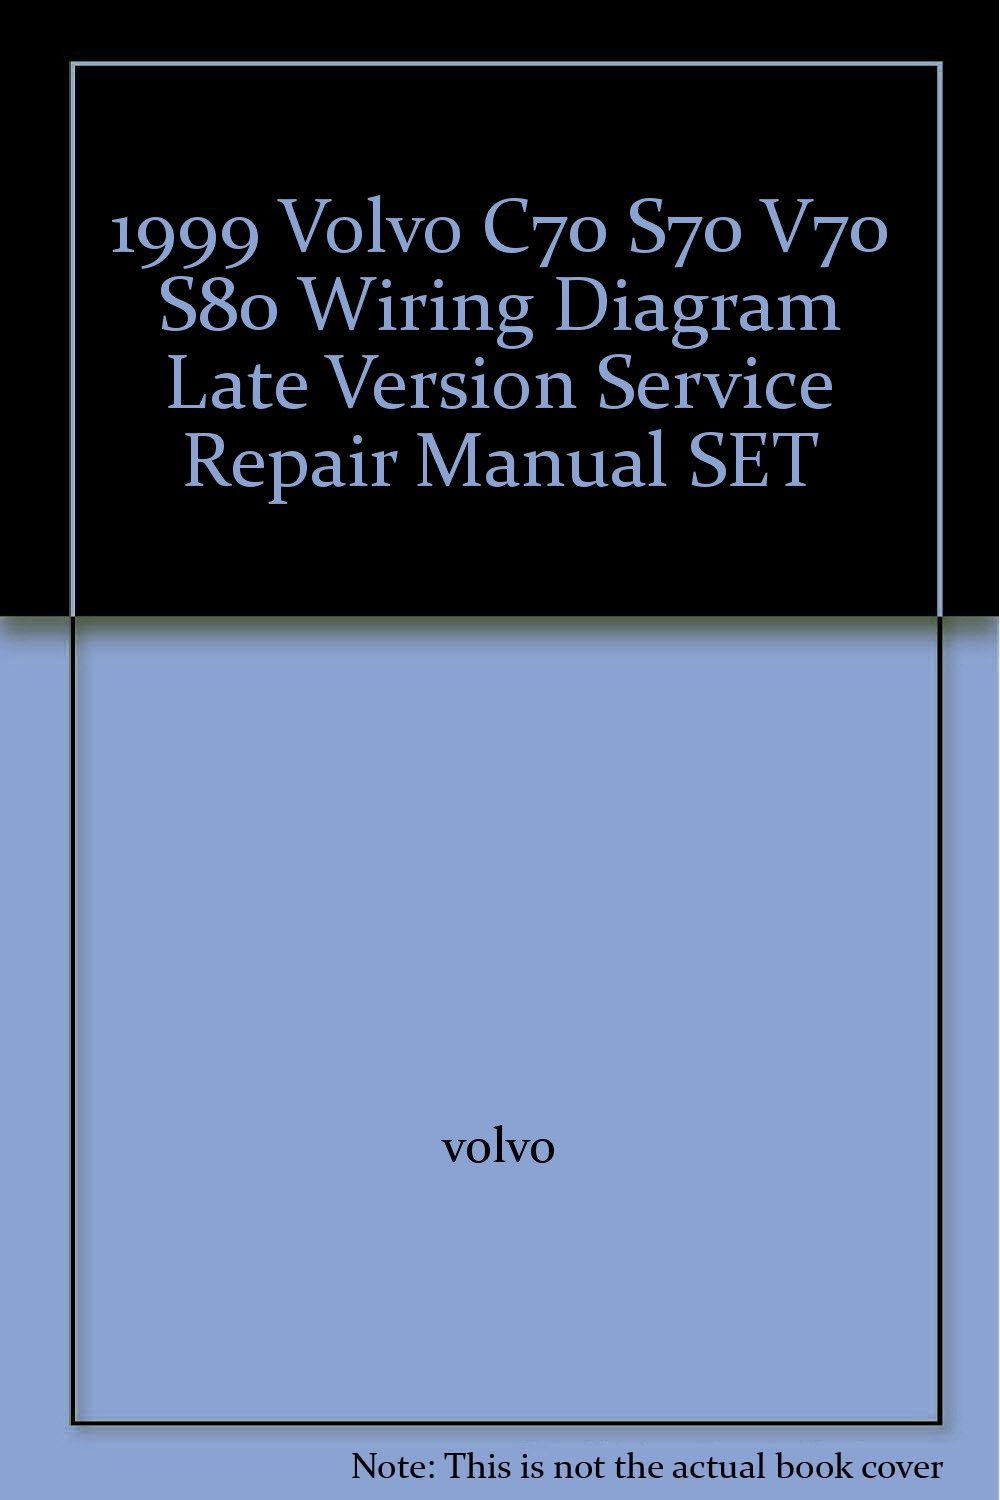 1999 volvo s80 wiring diagram great installation of wiring diagram • 1999 volvo c70 s70 v70 s80 wiring diagram late version service rh amazon com 1999 volvo s80 wiring diagram pdf volvo s80 t6 engine diagram